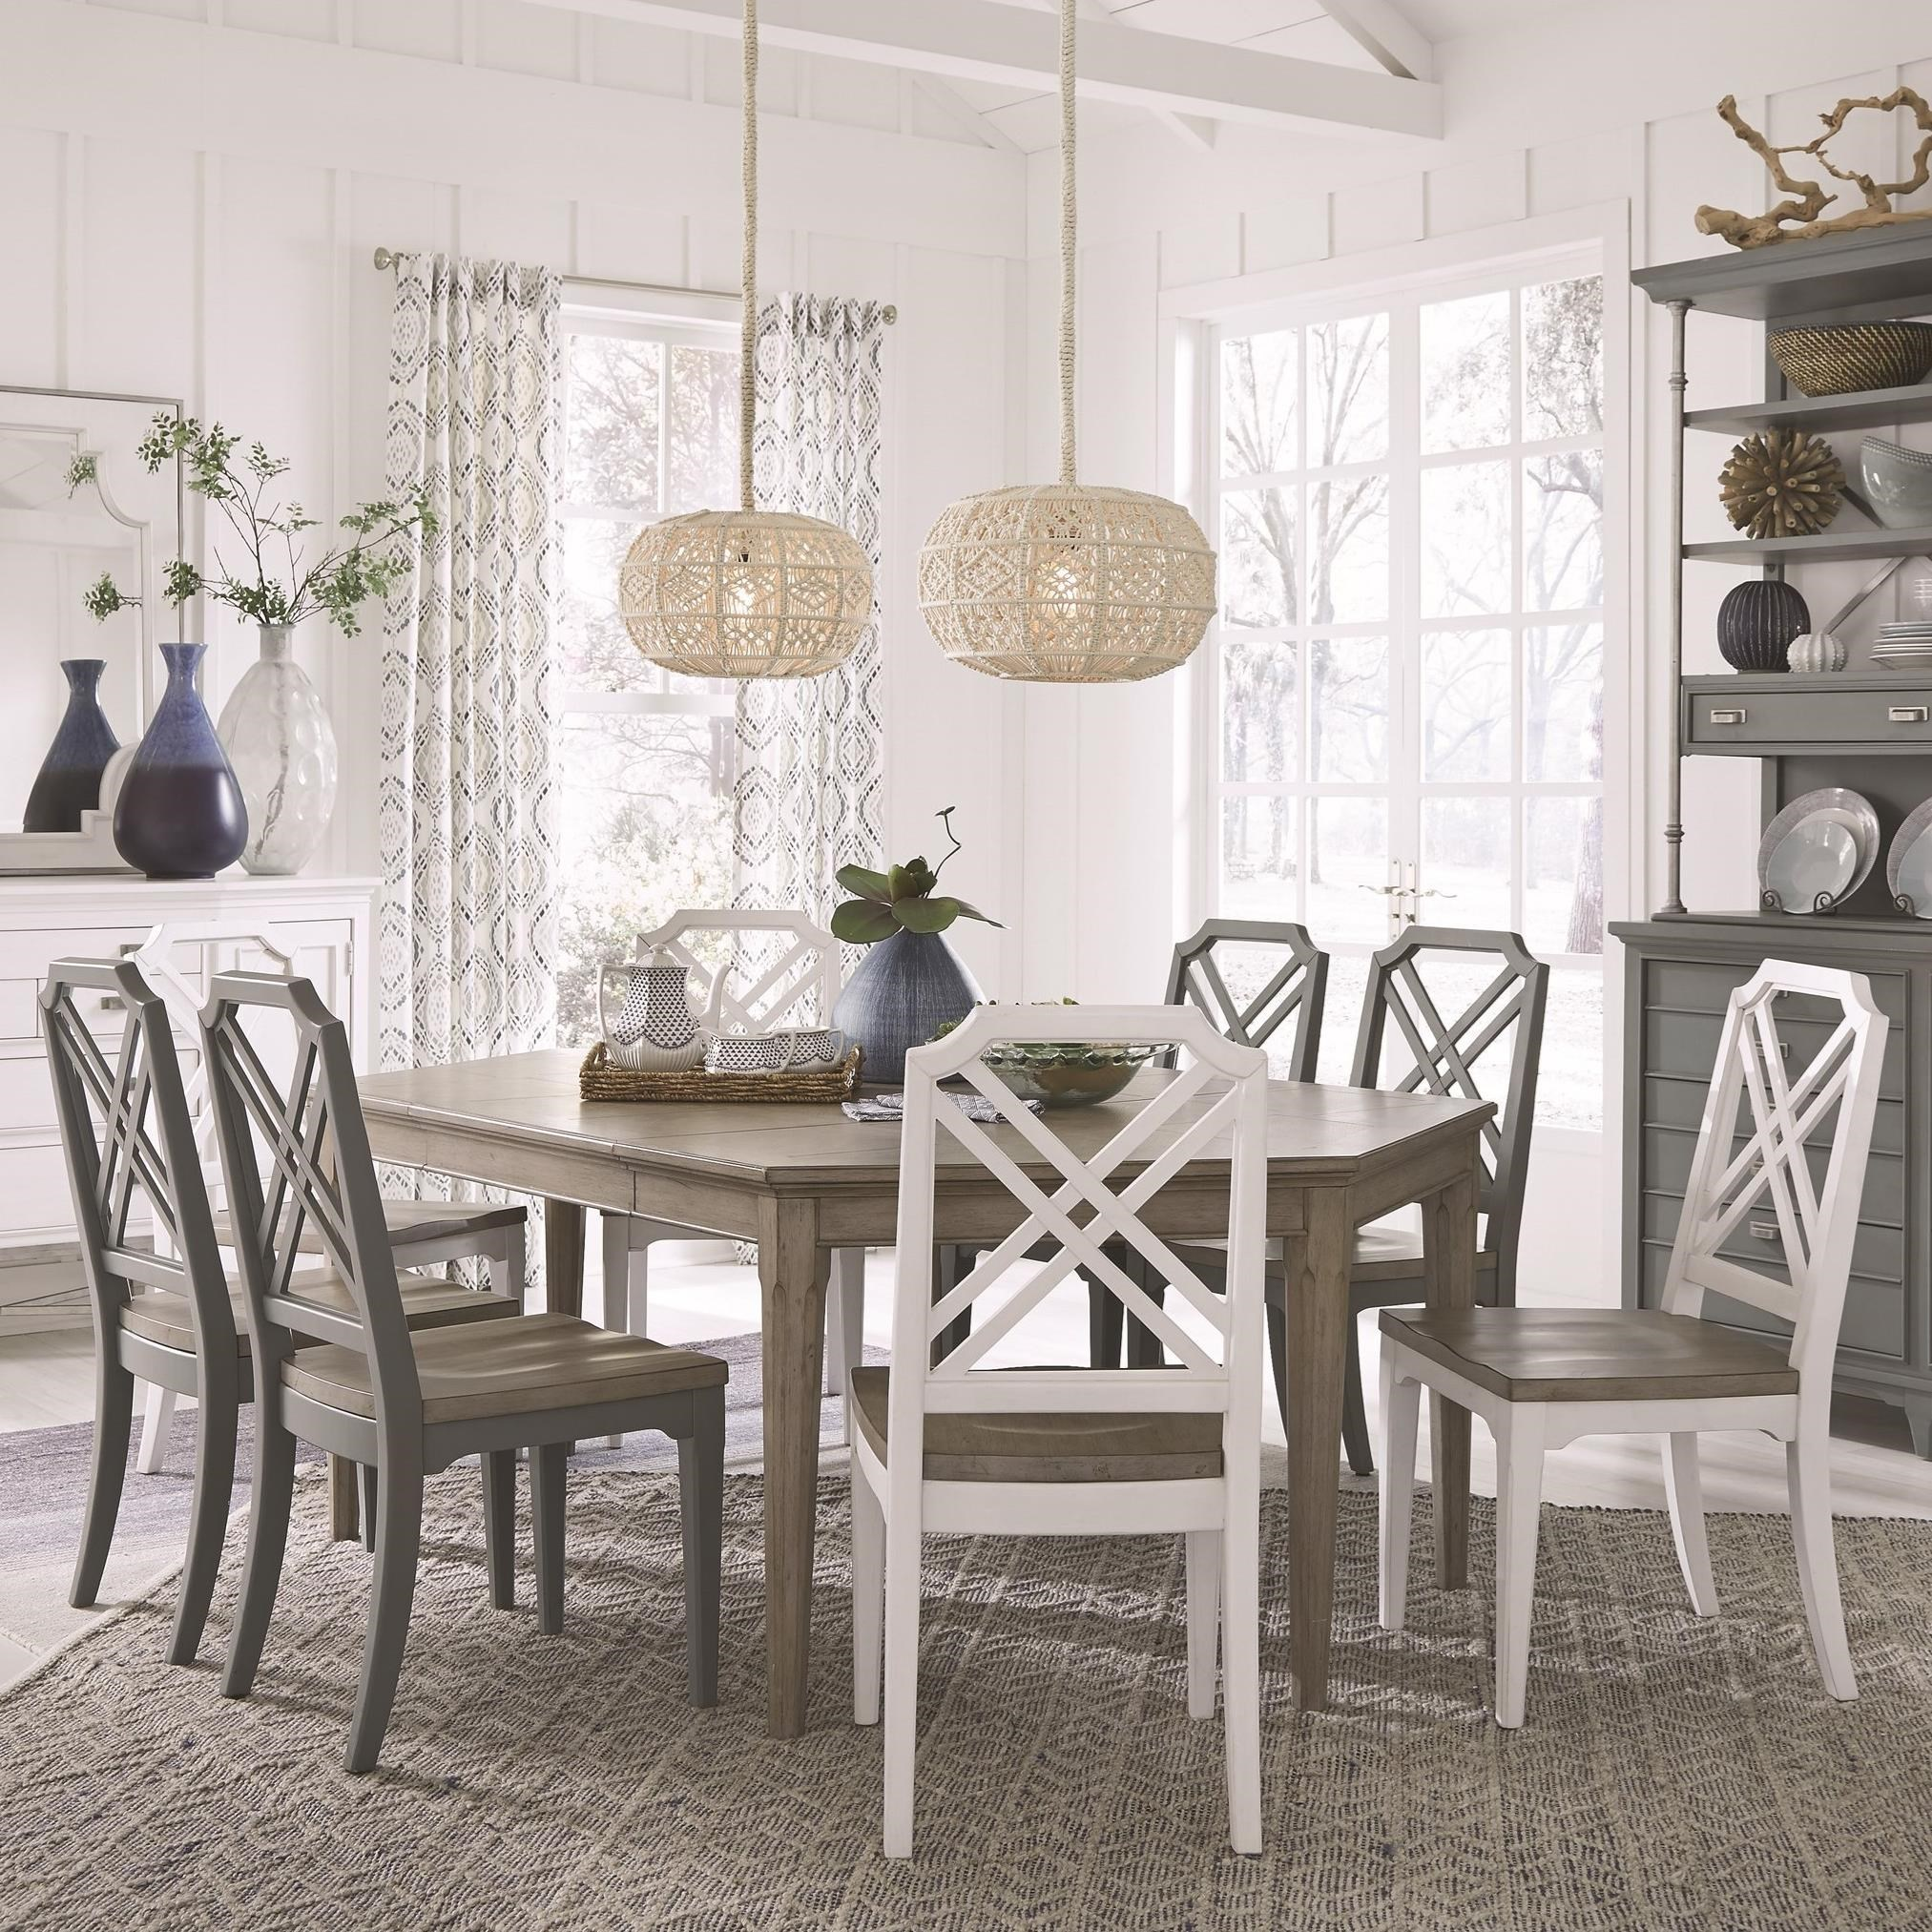 Dining Table Set for 8